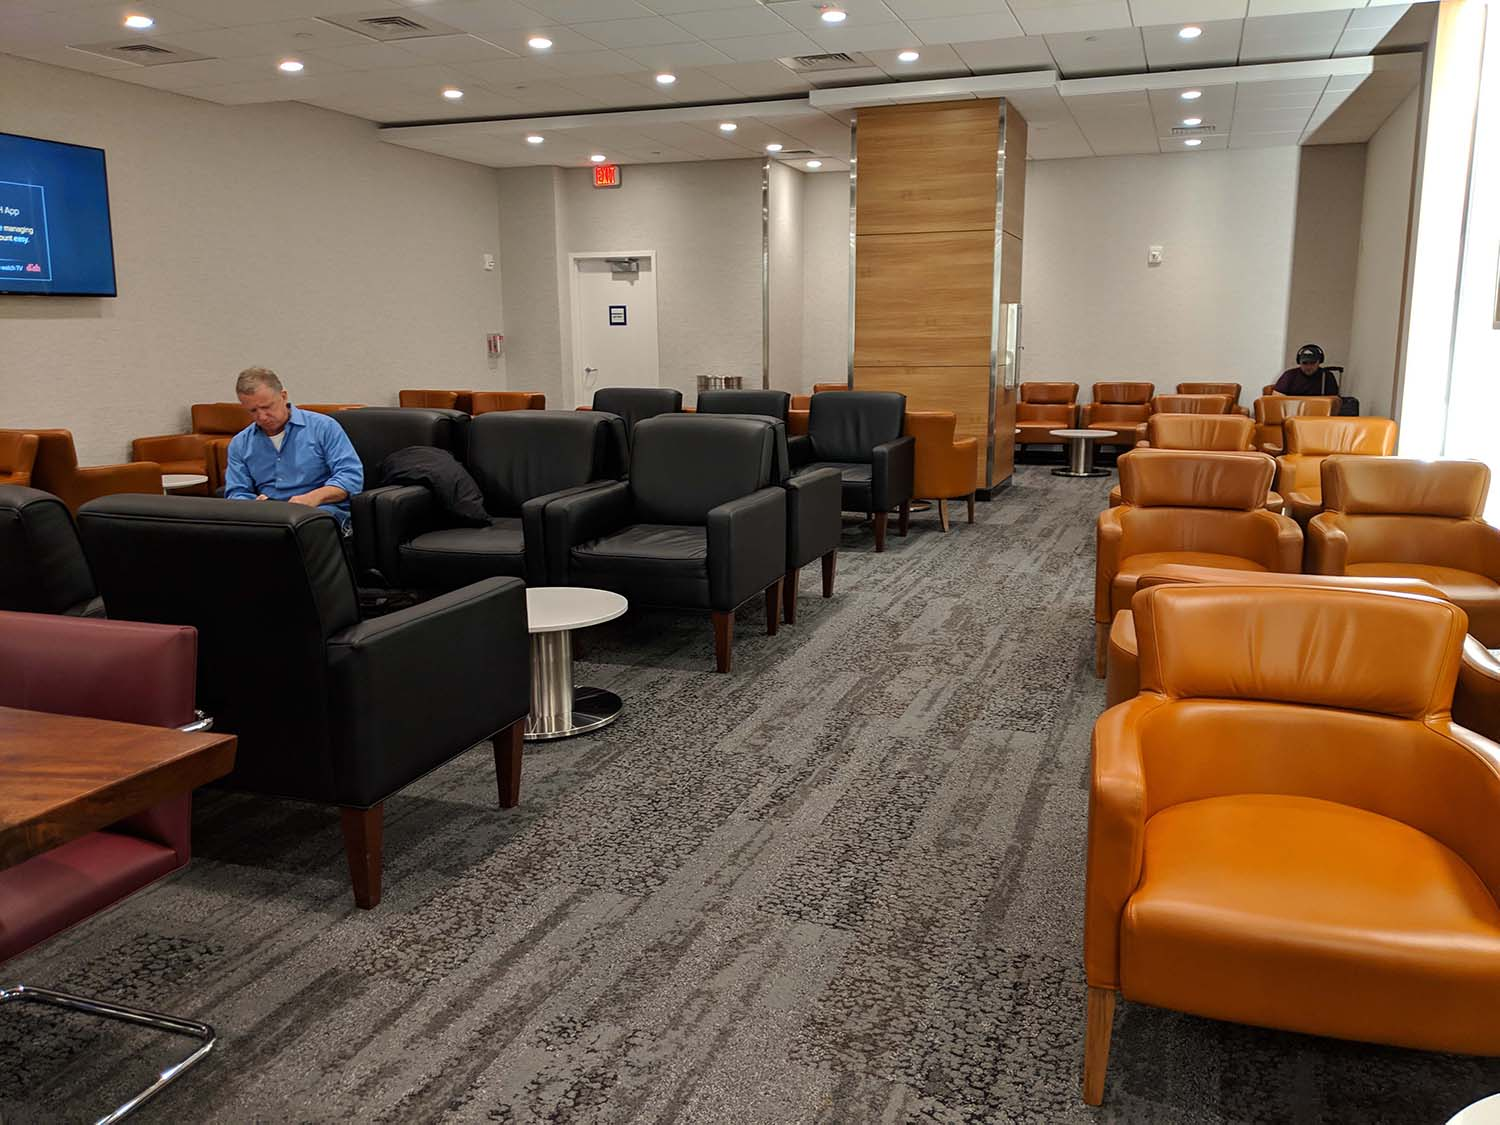 Delta Sky club in Fort lauderdale seating